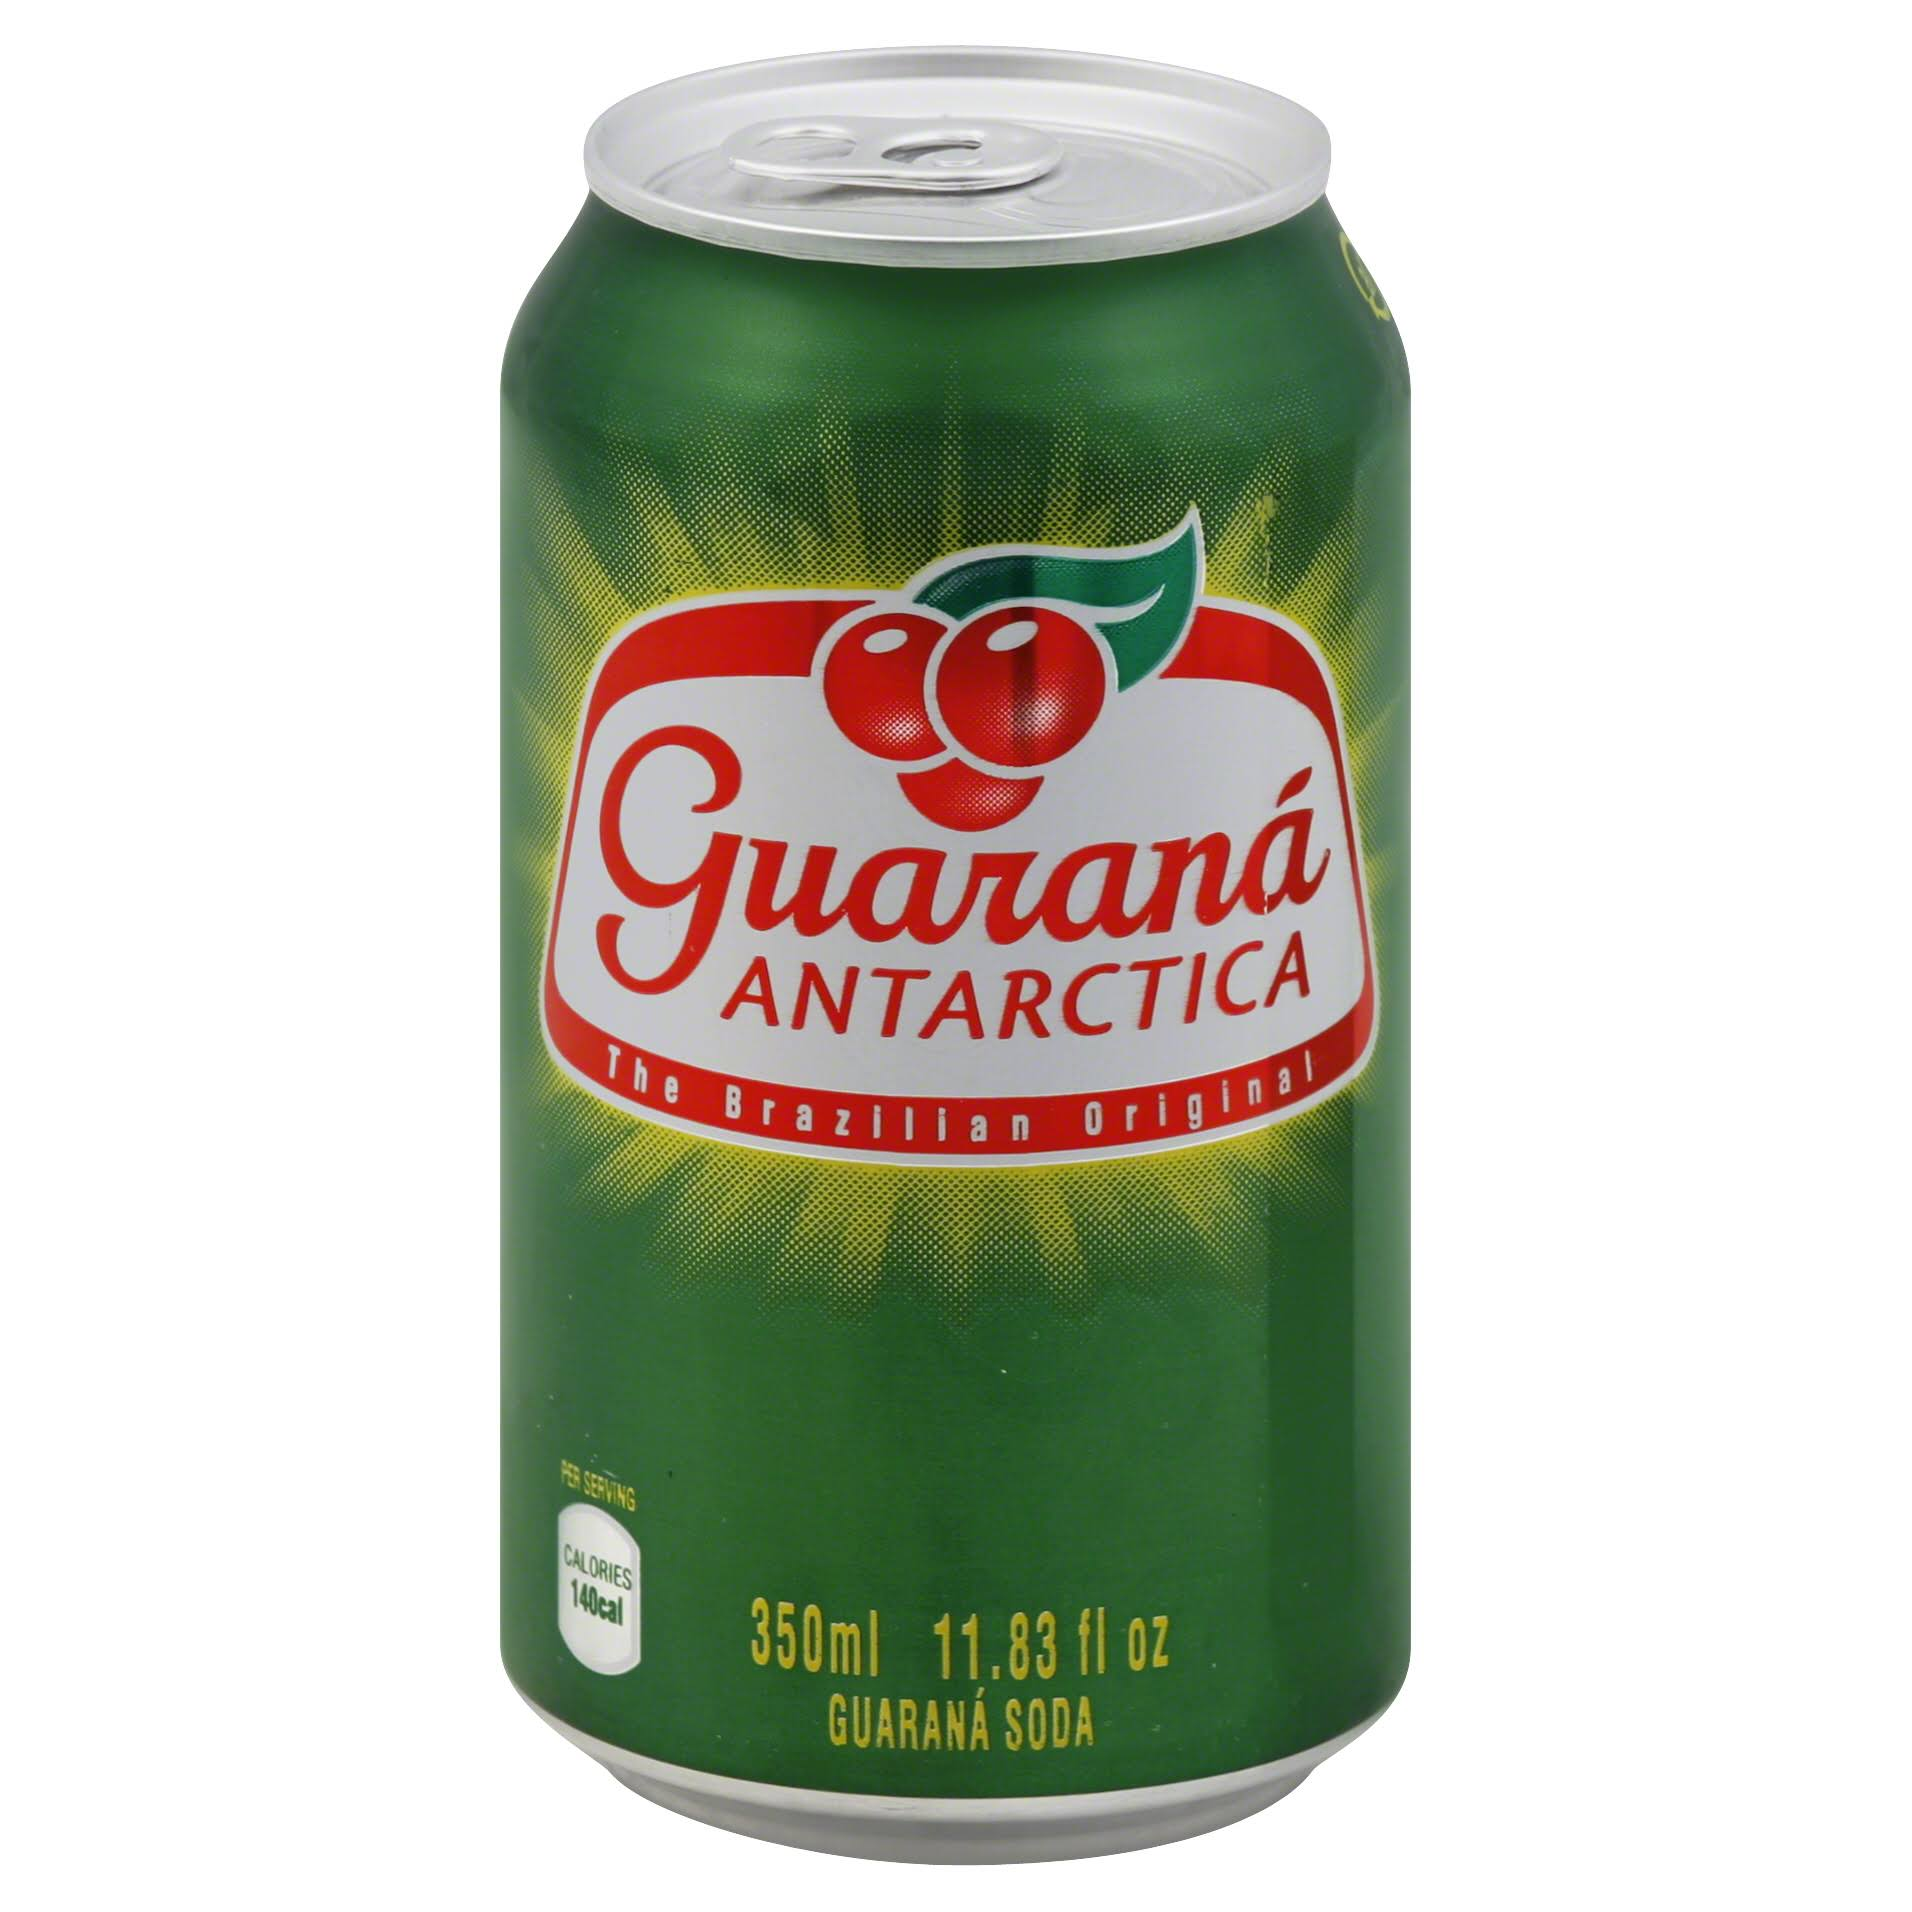 Guarana Antarctica Soda - 11.83oz, Pack of 12